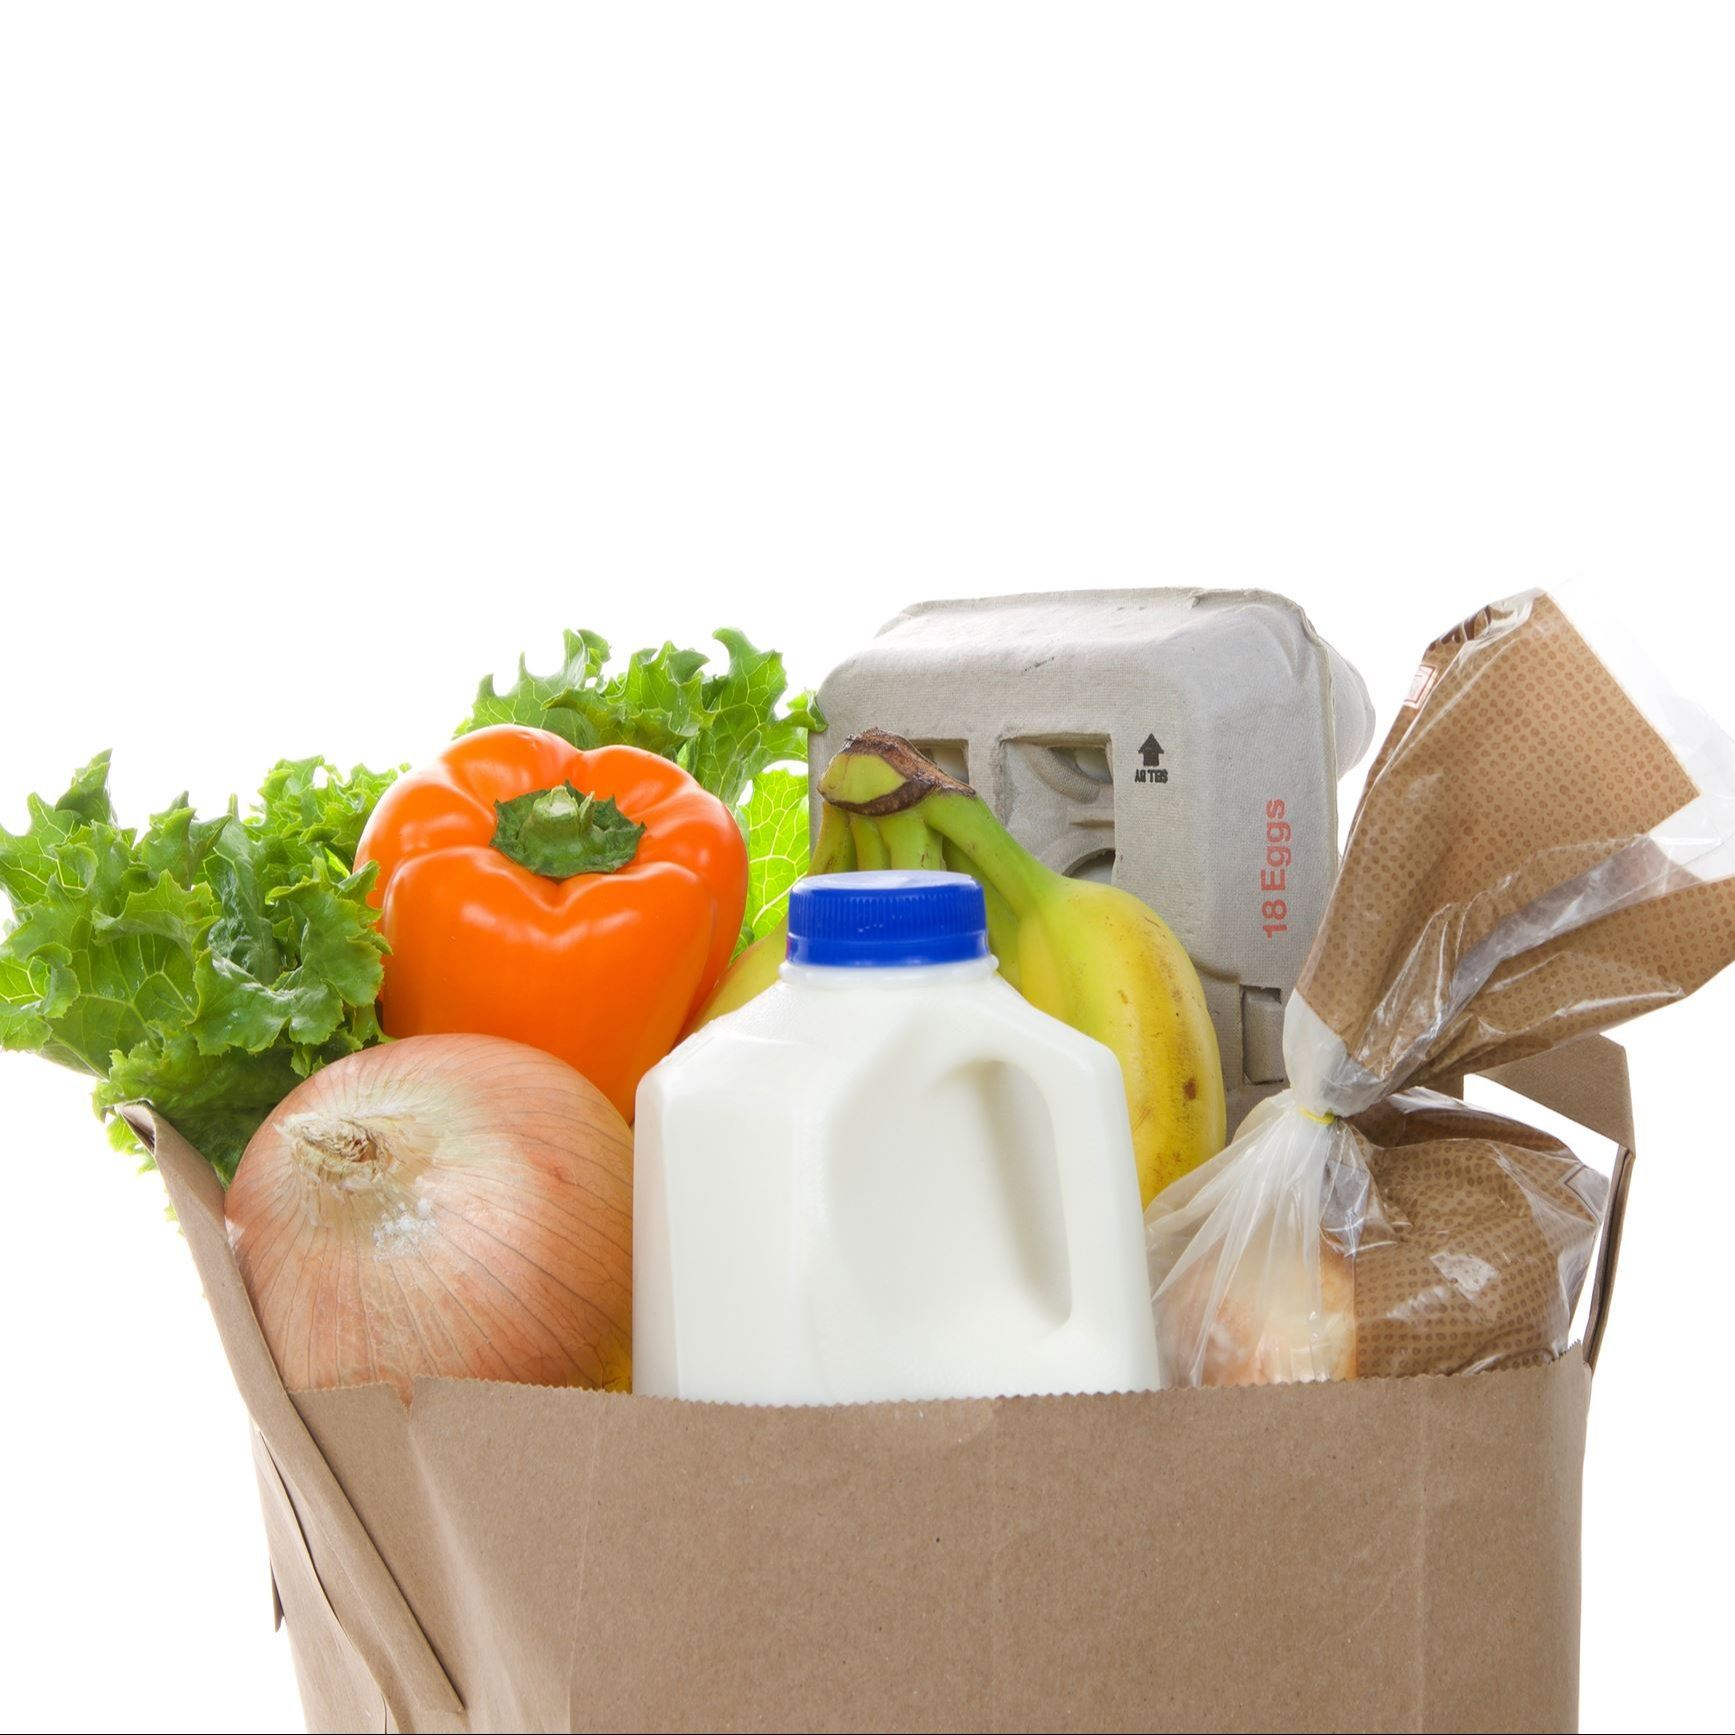 grocery bag with eggs, milk, vegetables